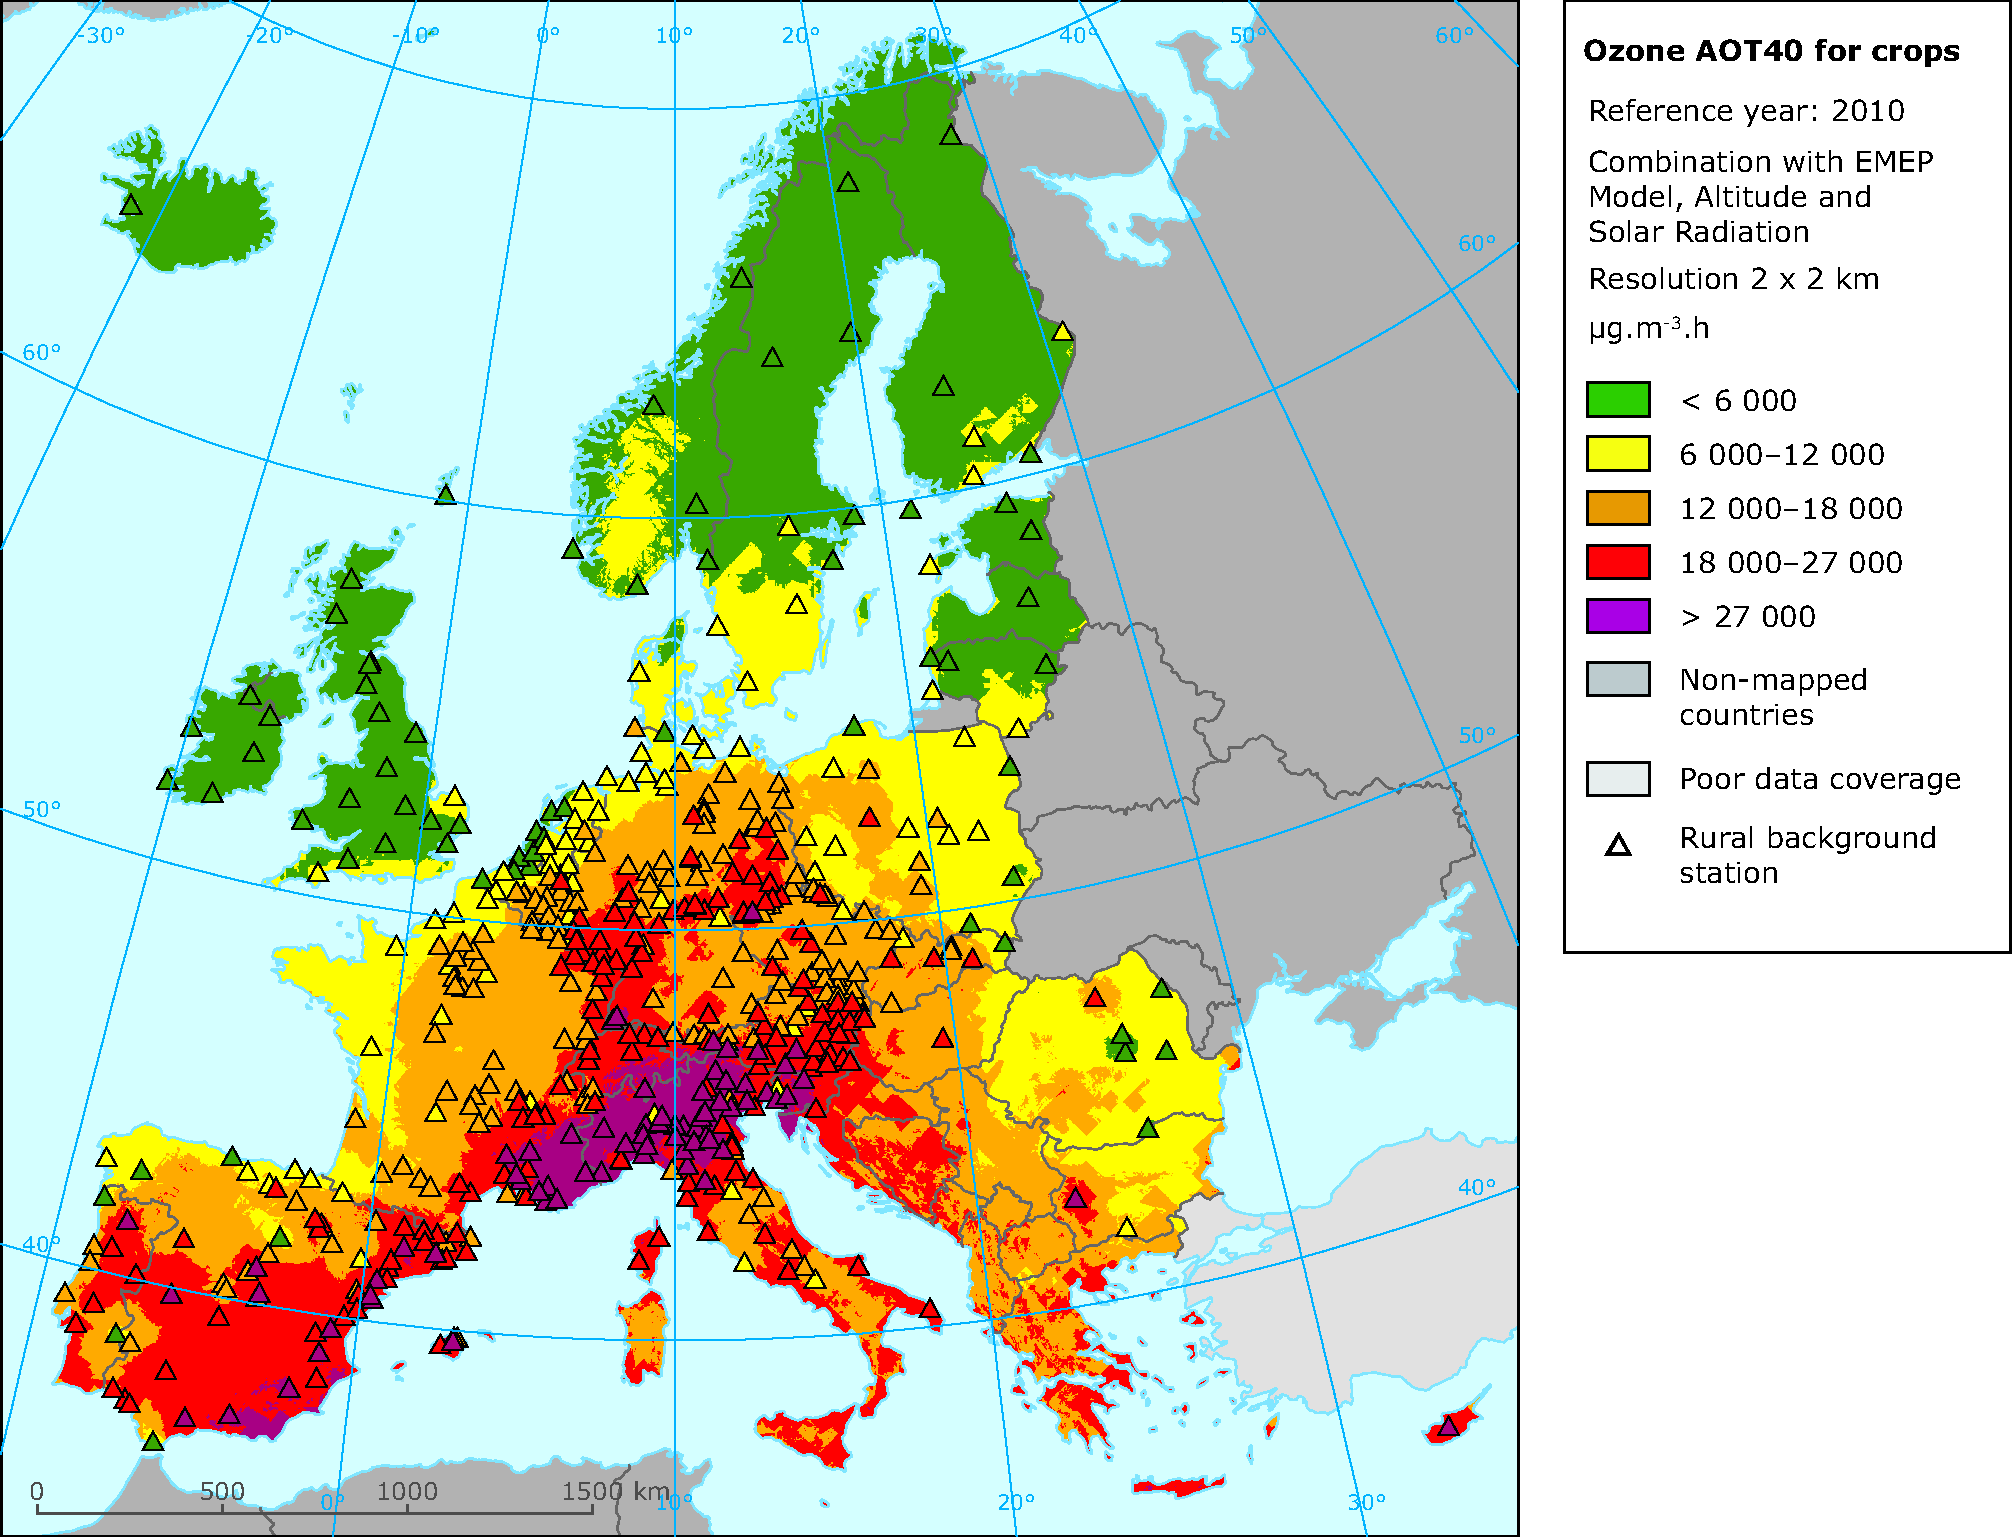 Exposure of European agricultural areas to ozone (AOT40